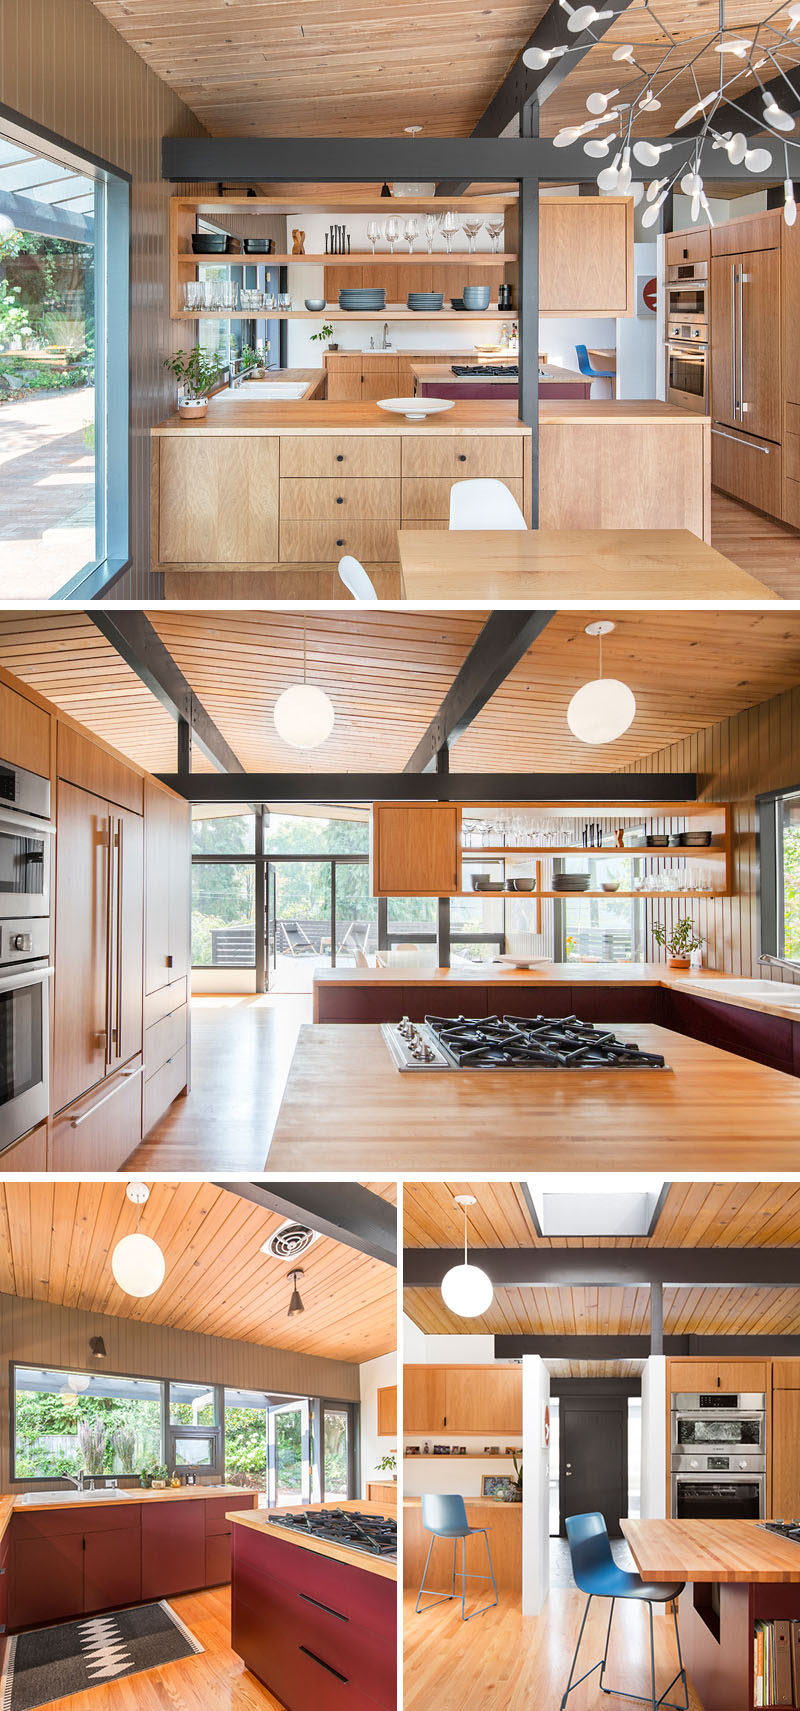 In this remodeled kitchen, kight wood cabinets and countertops have been paired with maroon laminate cabinets as the homeowners wanted to add a pop of color.#KitchenRemodel #WoodCabinets